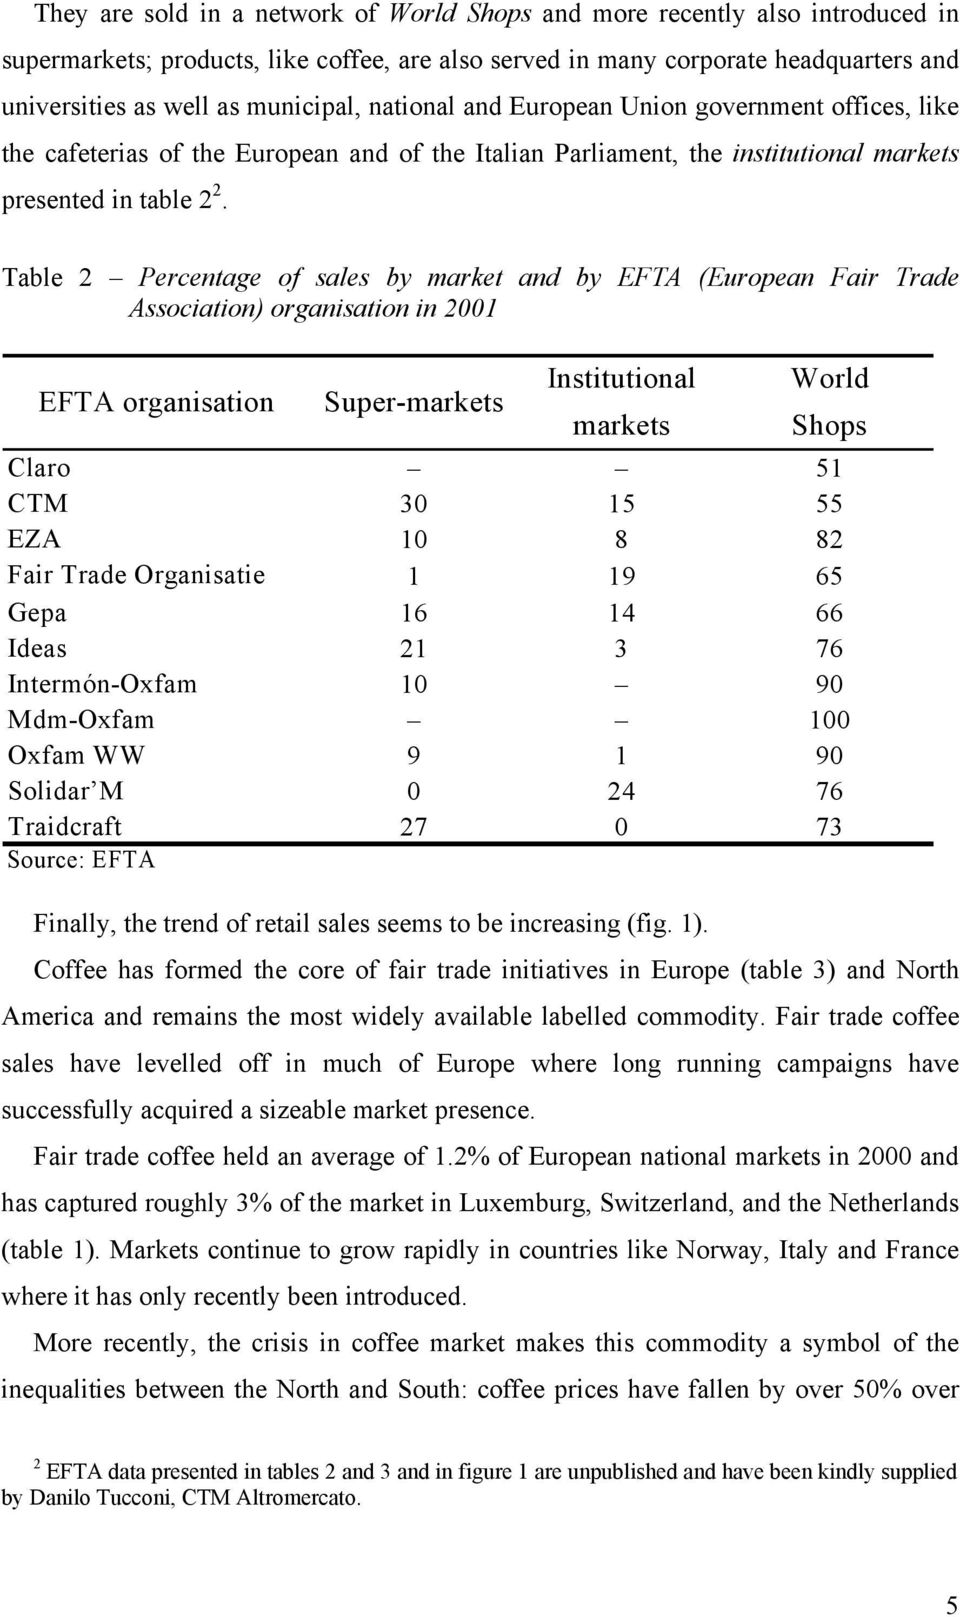 Table 2 Percentage of sales by market and by EFTA (European Fair Trade Association) organisation in 2001 EFTA organisation Super-markets Institutional World markets Shops Claro 51 CTM 30 15 55 EZA 10